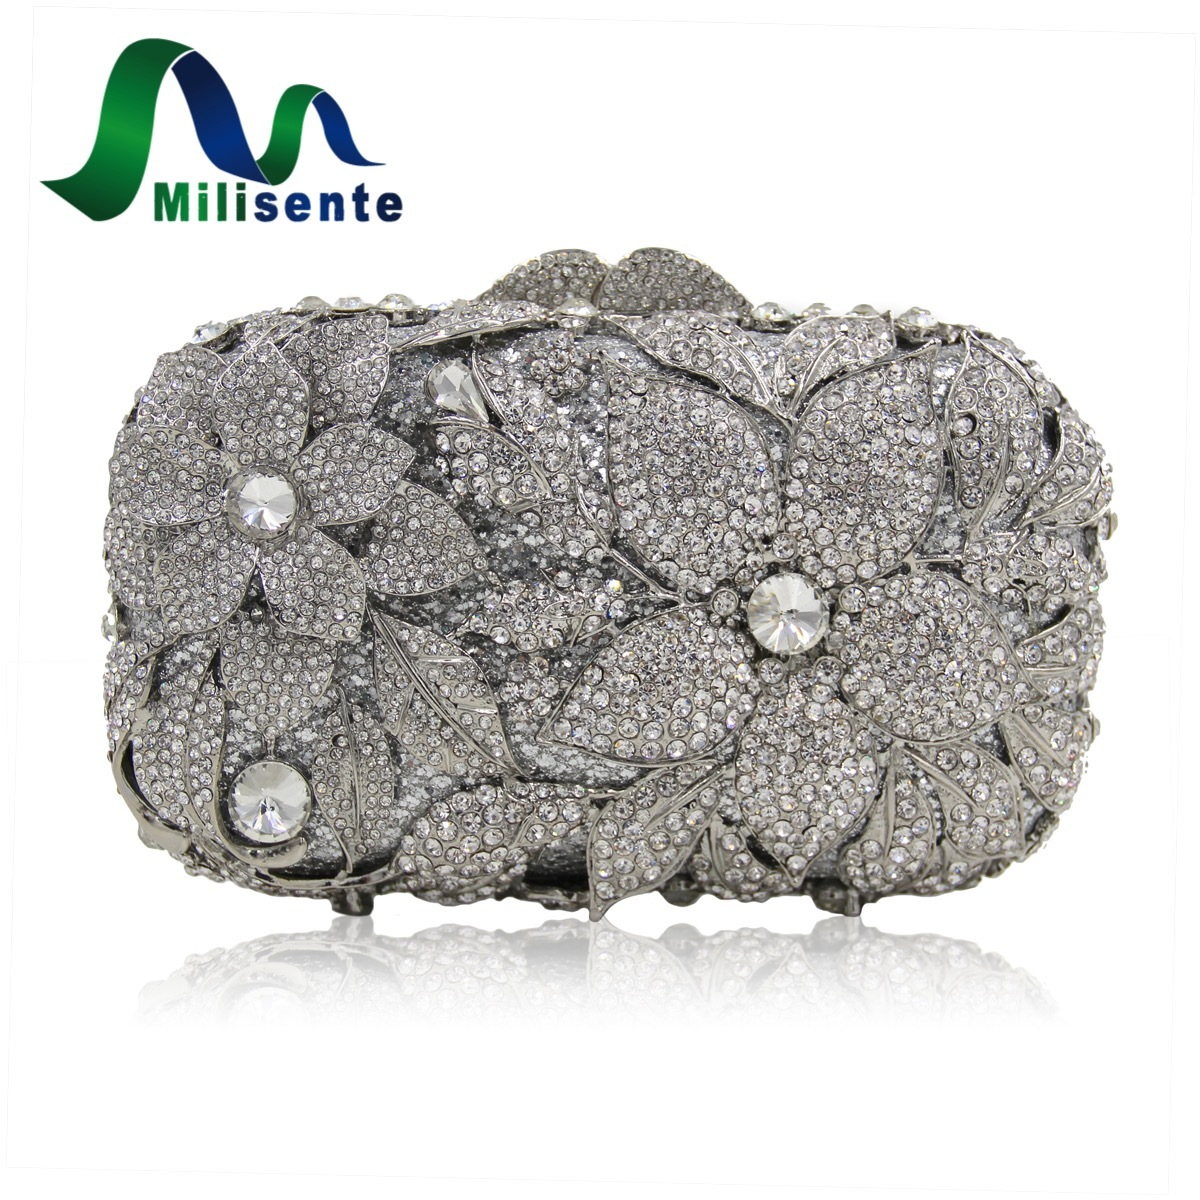 Milisente Top Class Crystal Bags Silver Flower Wedding Party Handbag Luxury Tote Bag Lady Clutch Evening Purse Short Chain as16 9 rose top fashion luxury diamond african handbag purse for party wedding